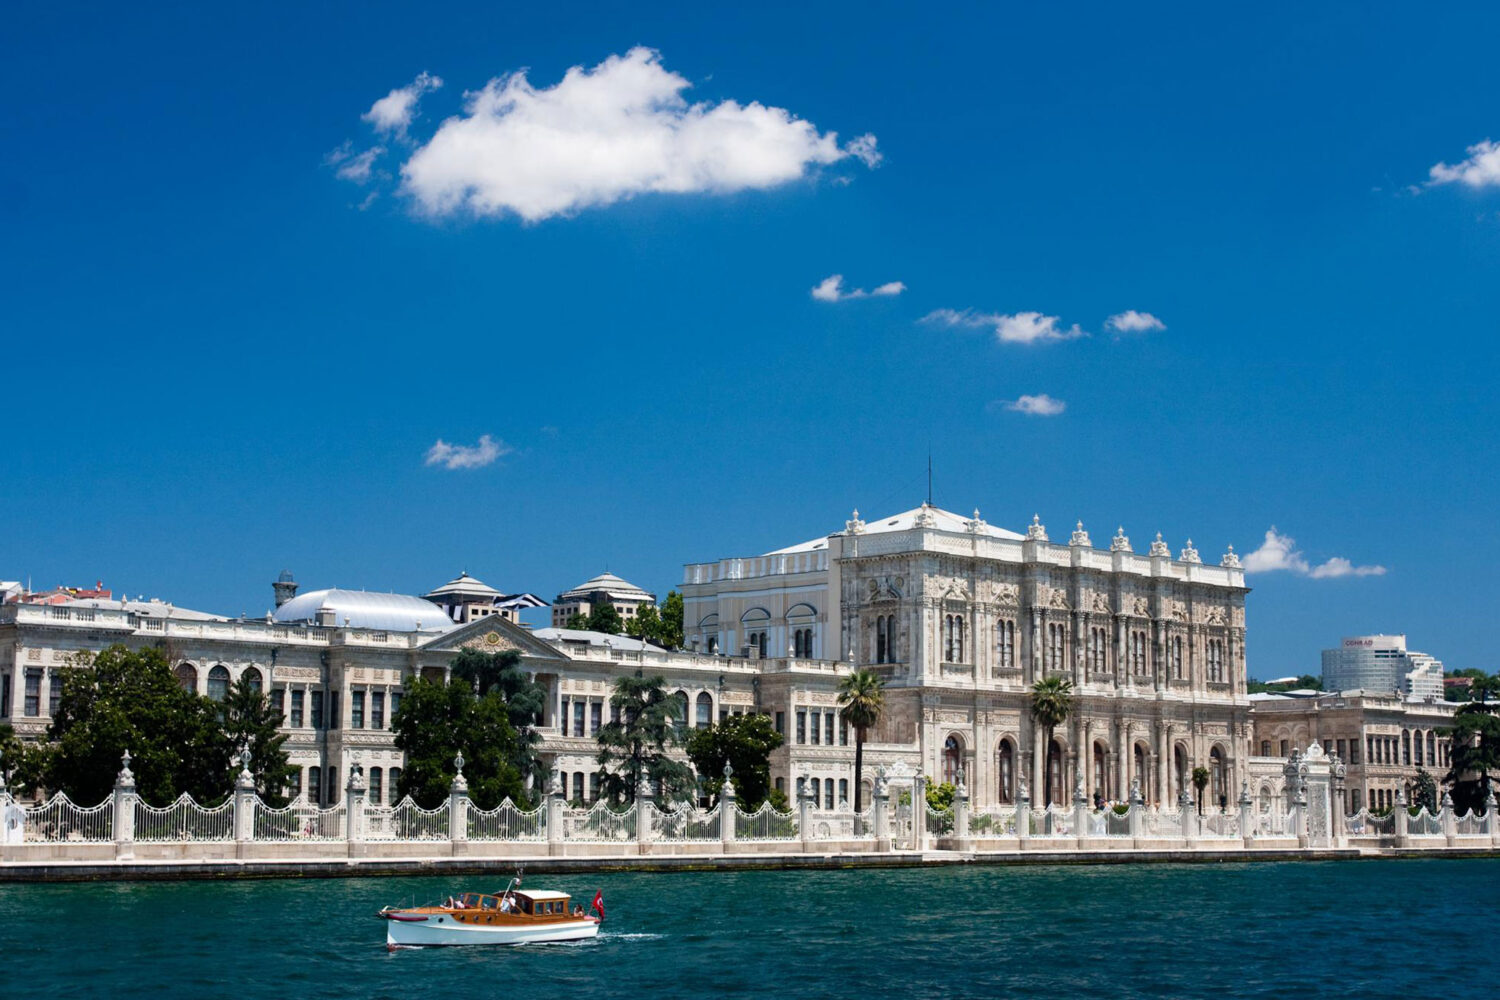 Tour Photos Dolmabahce Palace from Bosphorus